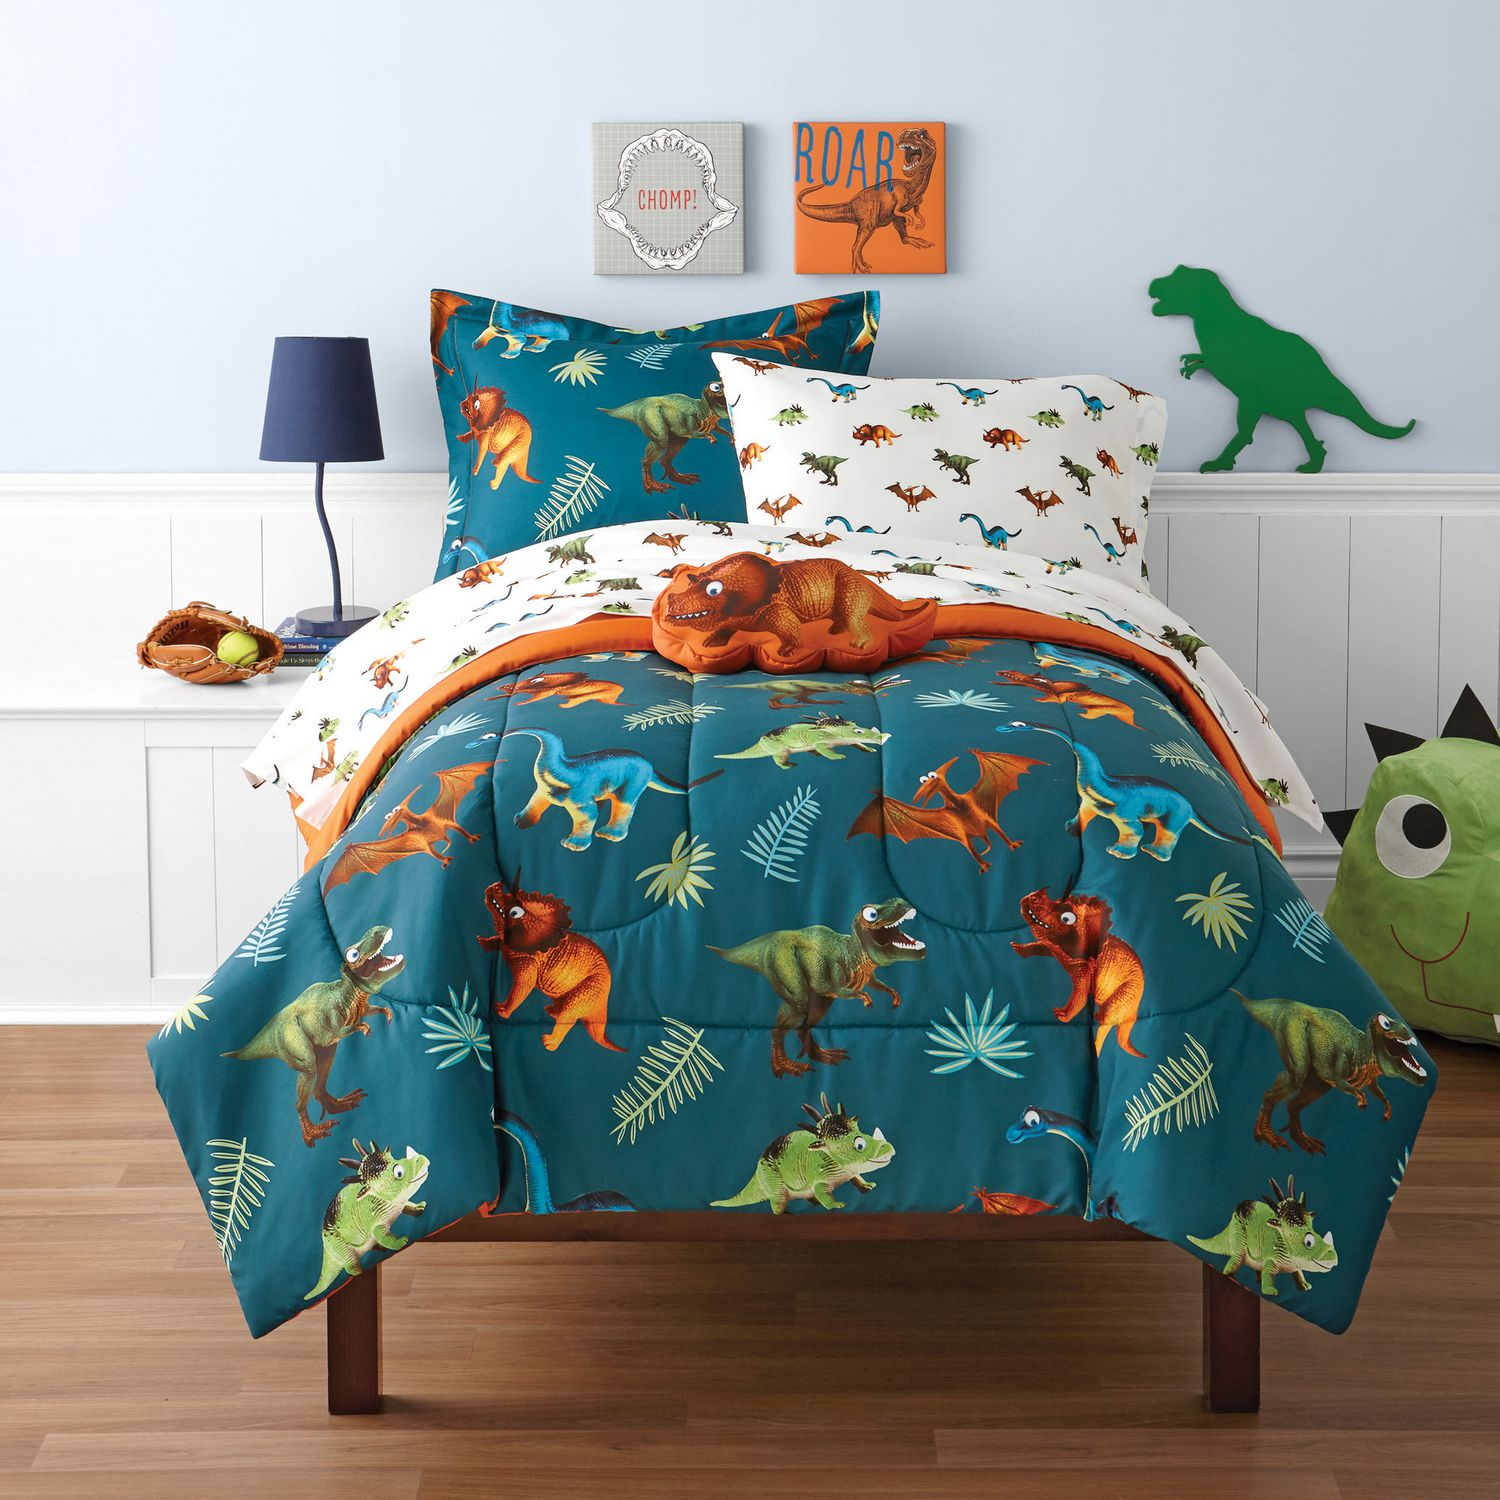 pattern bedsheets by buy best sheets prices bed at in india online amazon l sheet b